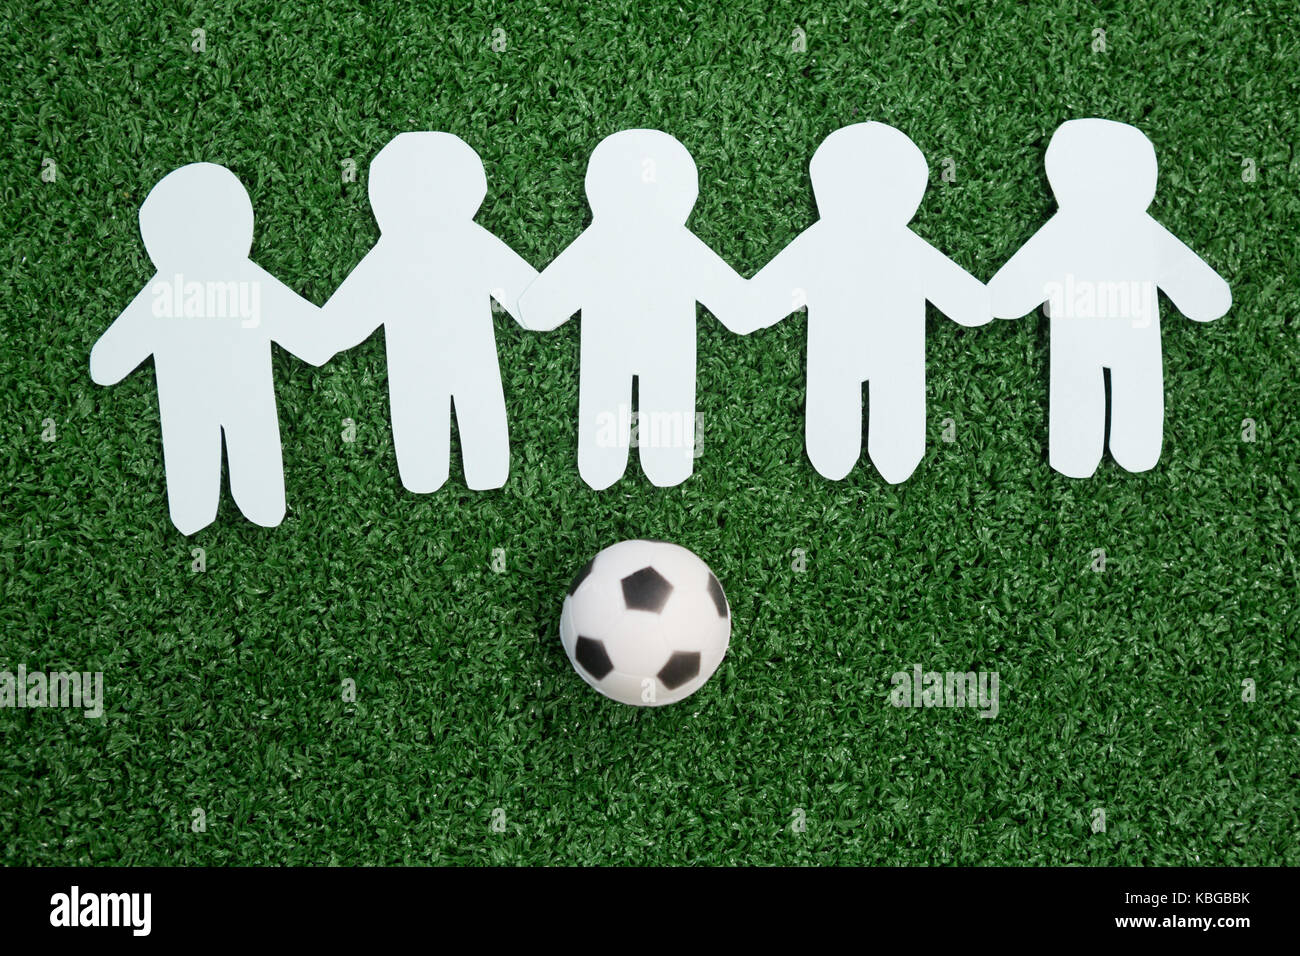 Close-up of paper cut outs and footballs arranged on artificial grass - Stock Image